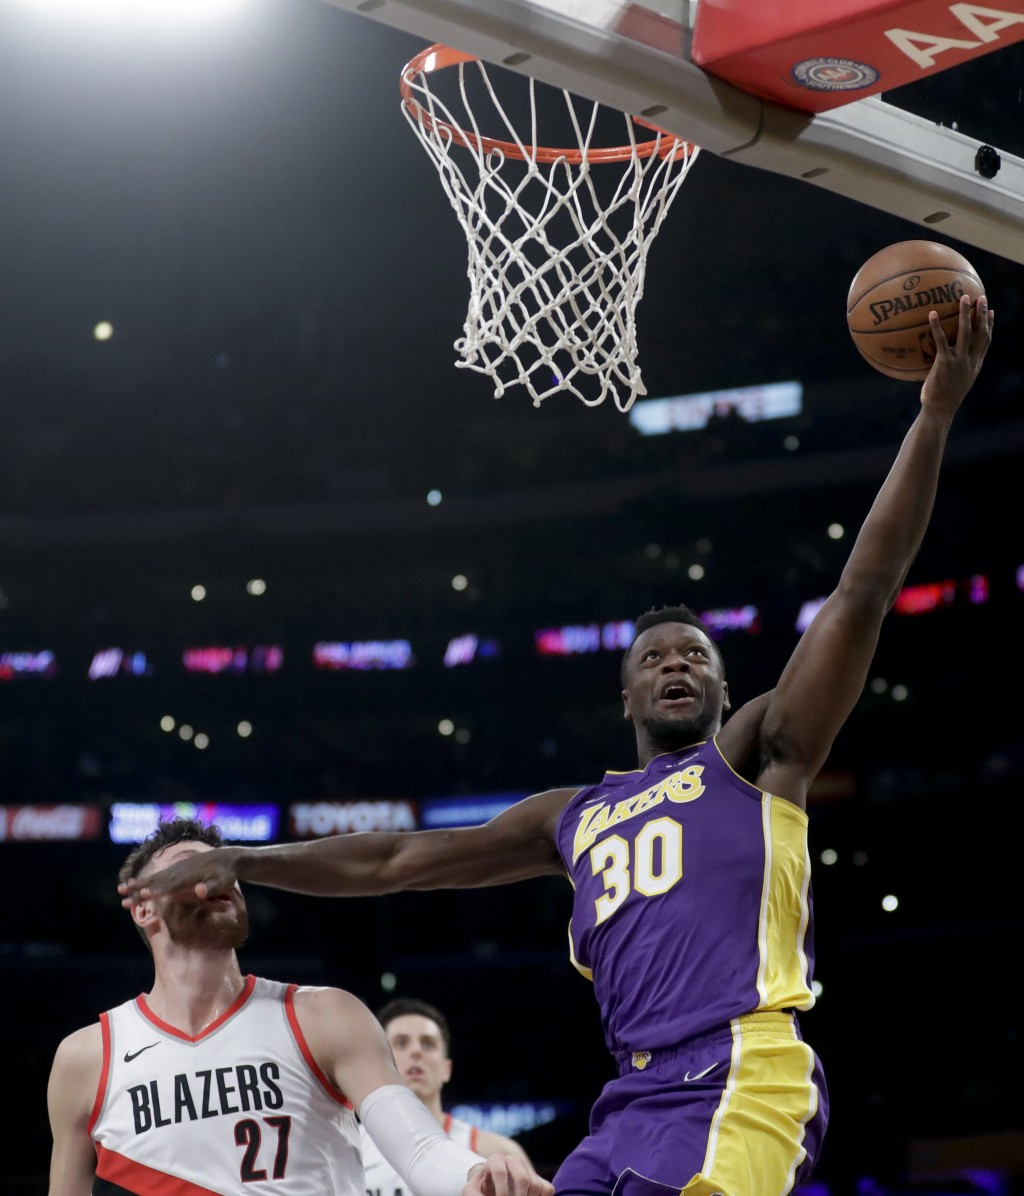 Los Angeles Lakers forward Julius Randle, right, fouls Portland Trail Blazers center Jusuf Nurkic during the first half of an NBA basketball game in L...